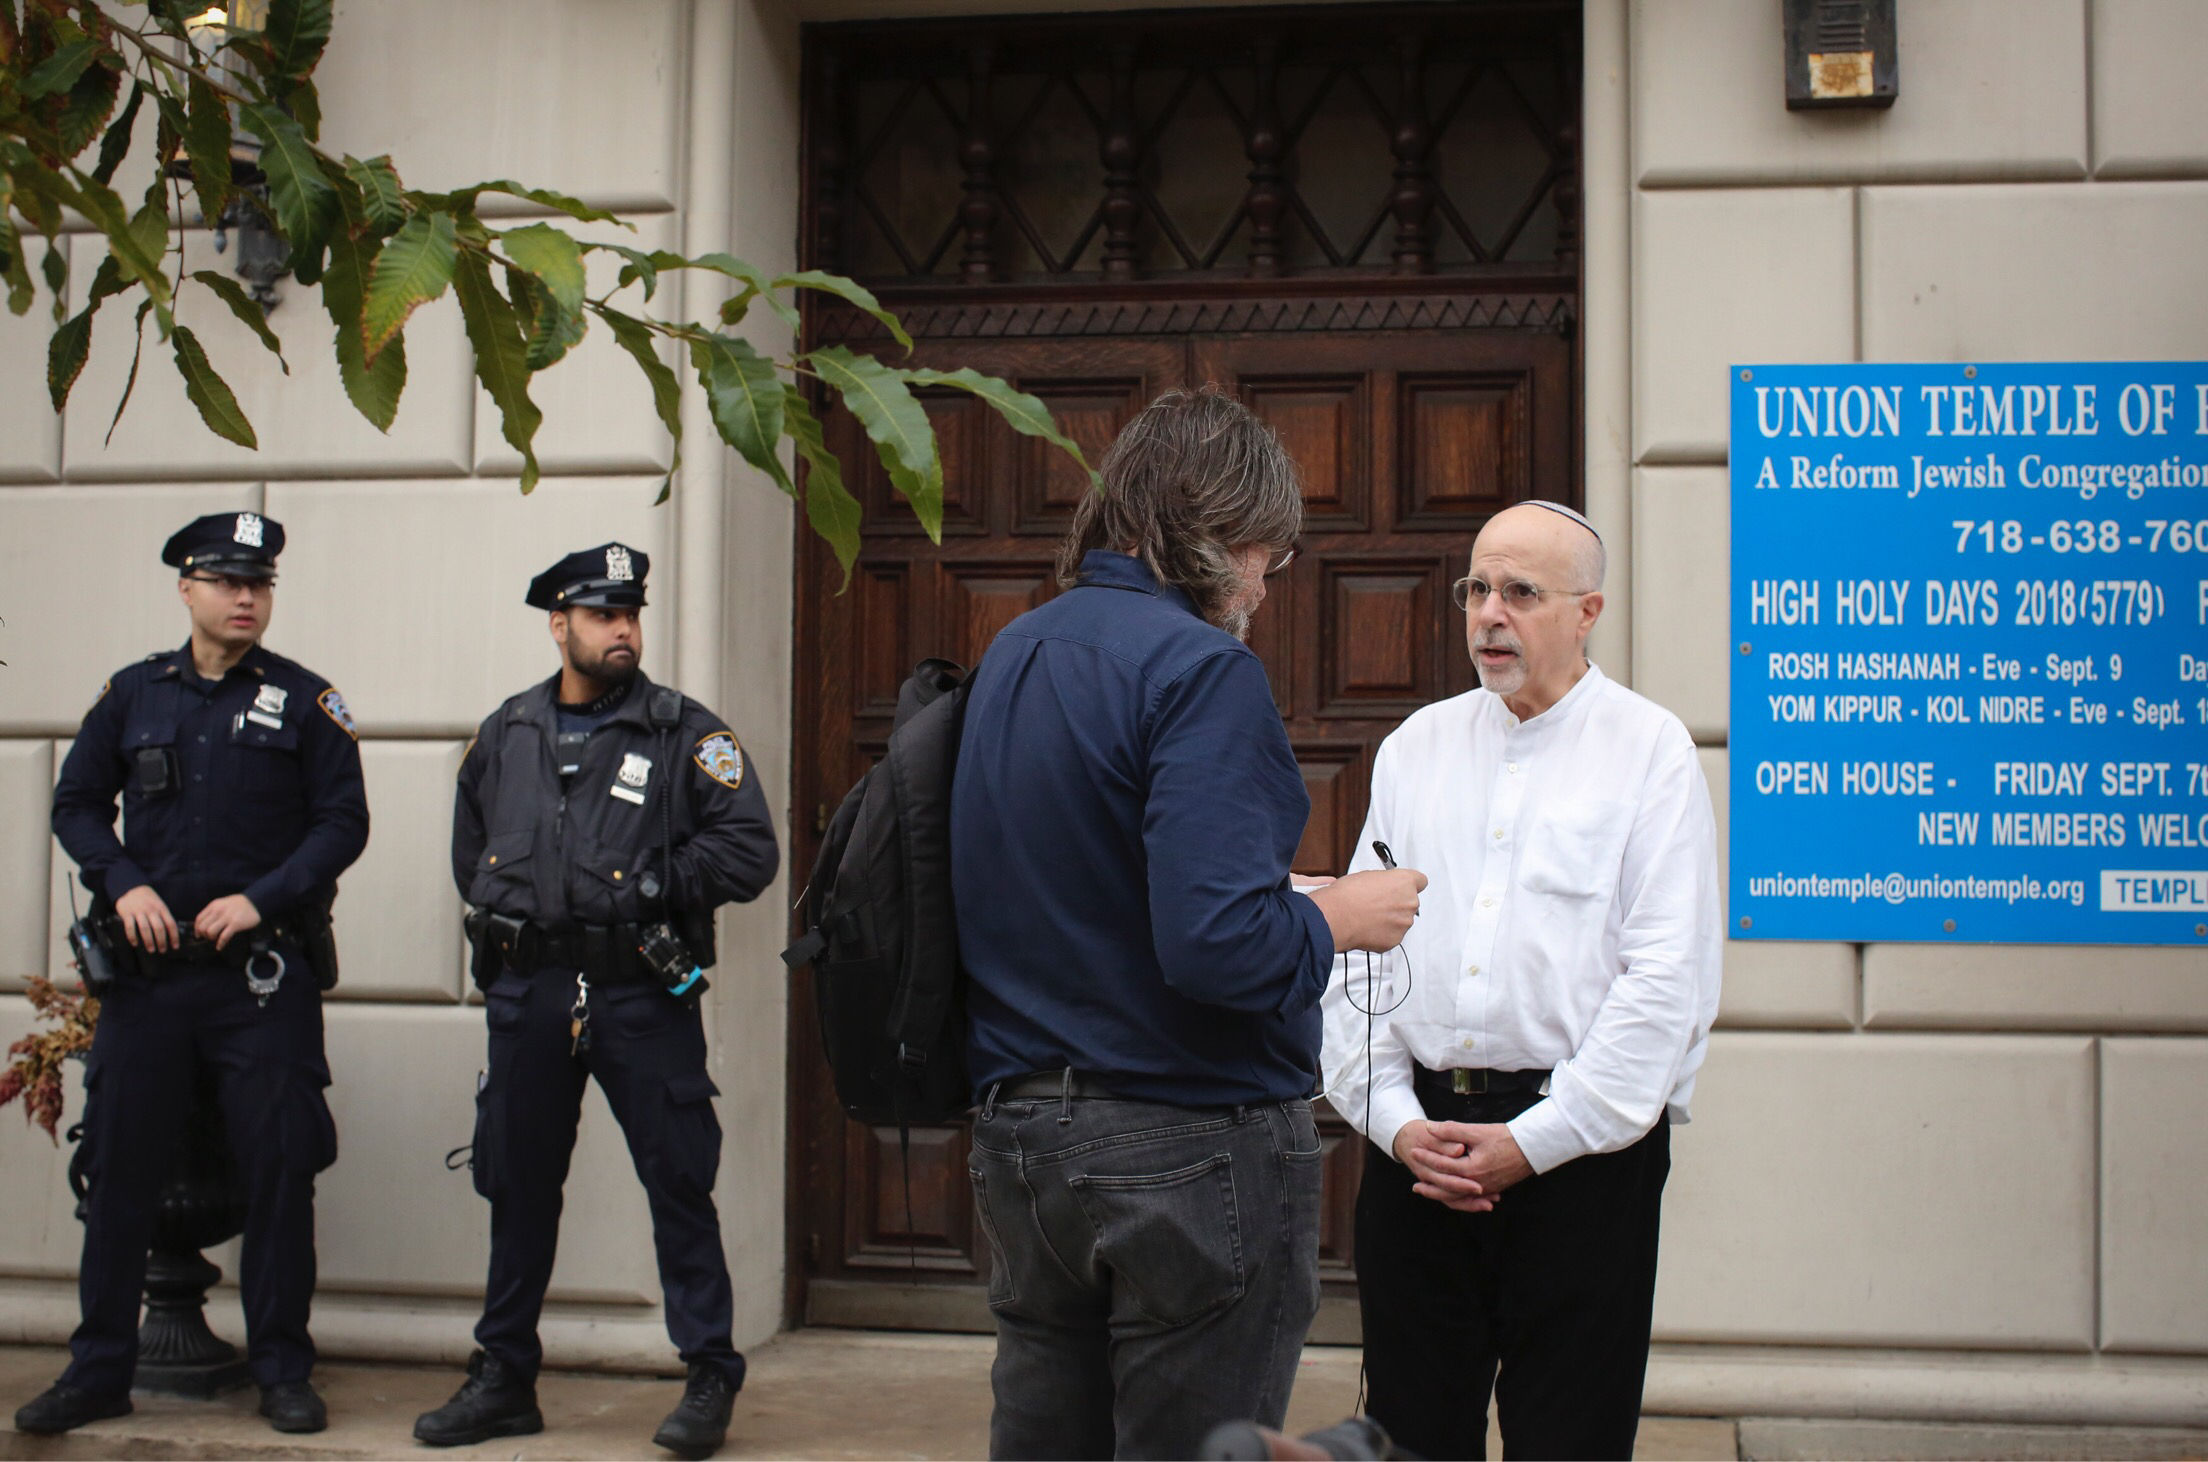 Rabbi Mark Sameth speaks with members of the Media as NYPD officers stand guard at the door of the Union Temple of Brooklyn on November 2, 2018 in New York City. - New York police were investigating anti-Semitic graffiti found inside a Brooklyn synagogue that forced the cancellation of a political event less than a week after the worst anti-Semitic attack in modern US history. (Photo: KENA BETANCUR/AFP via Getty Images)